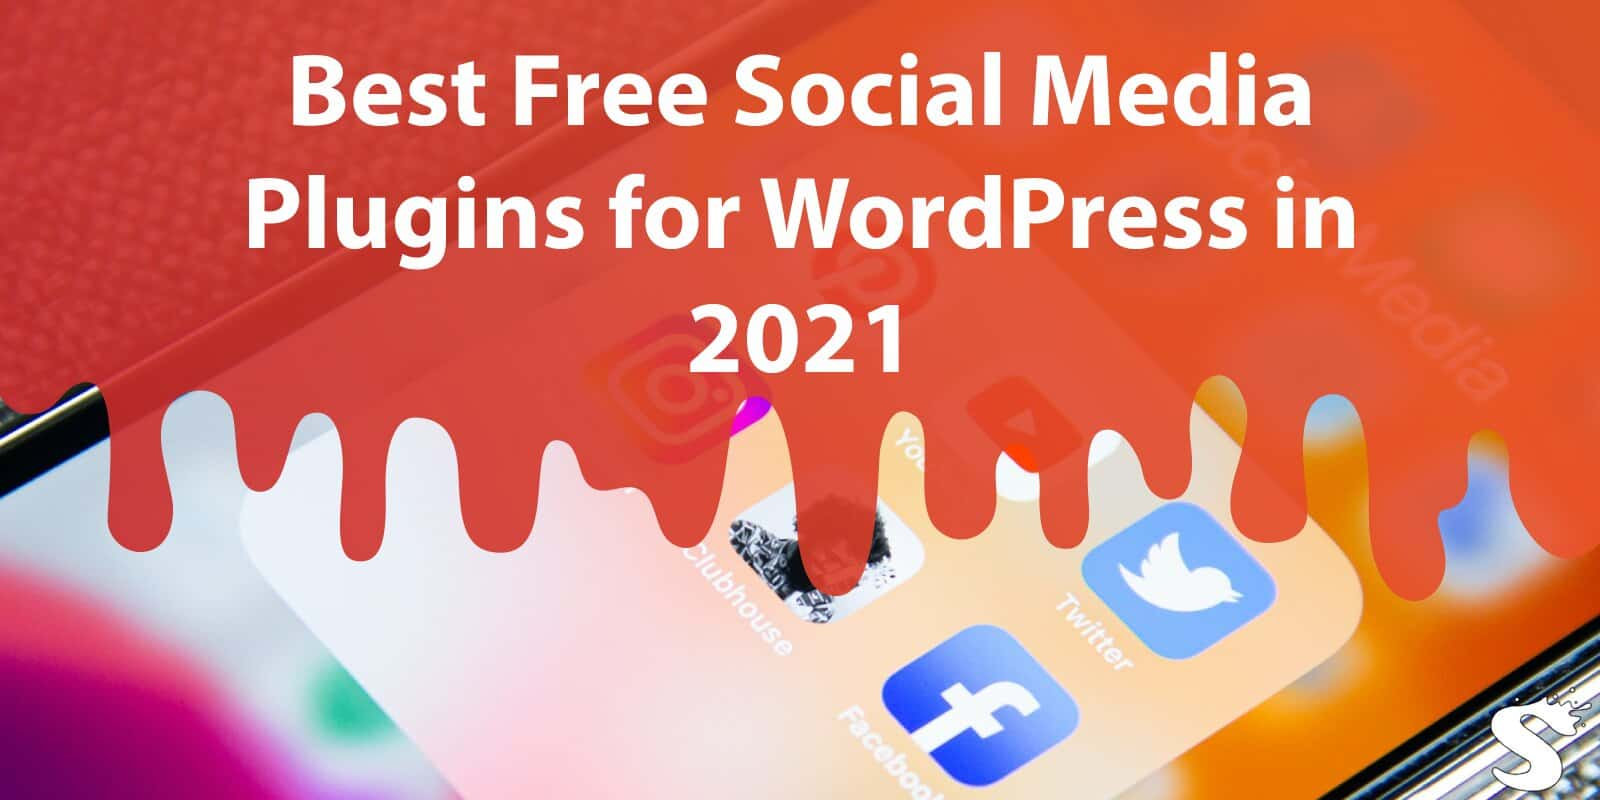 Best Free Social Media Plugins for WordPress in 2021 That Will Enhance Your Site Significantly